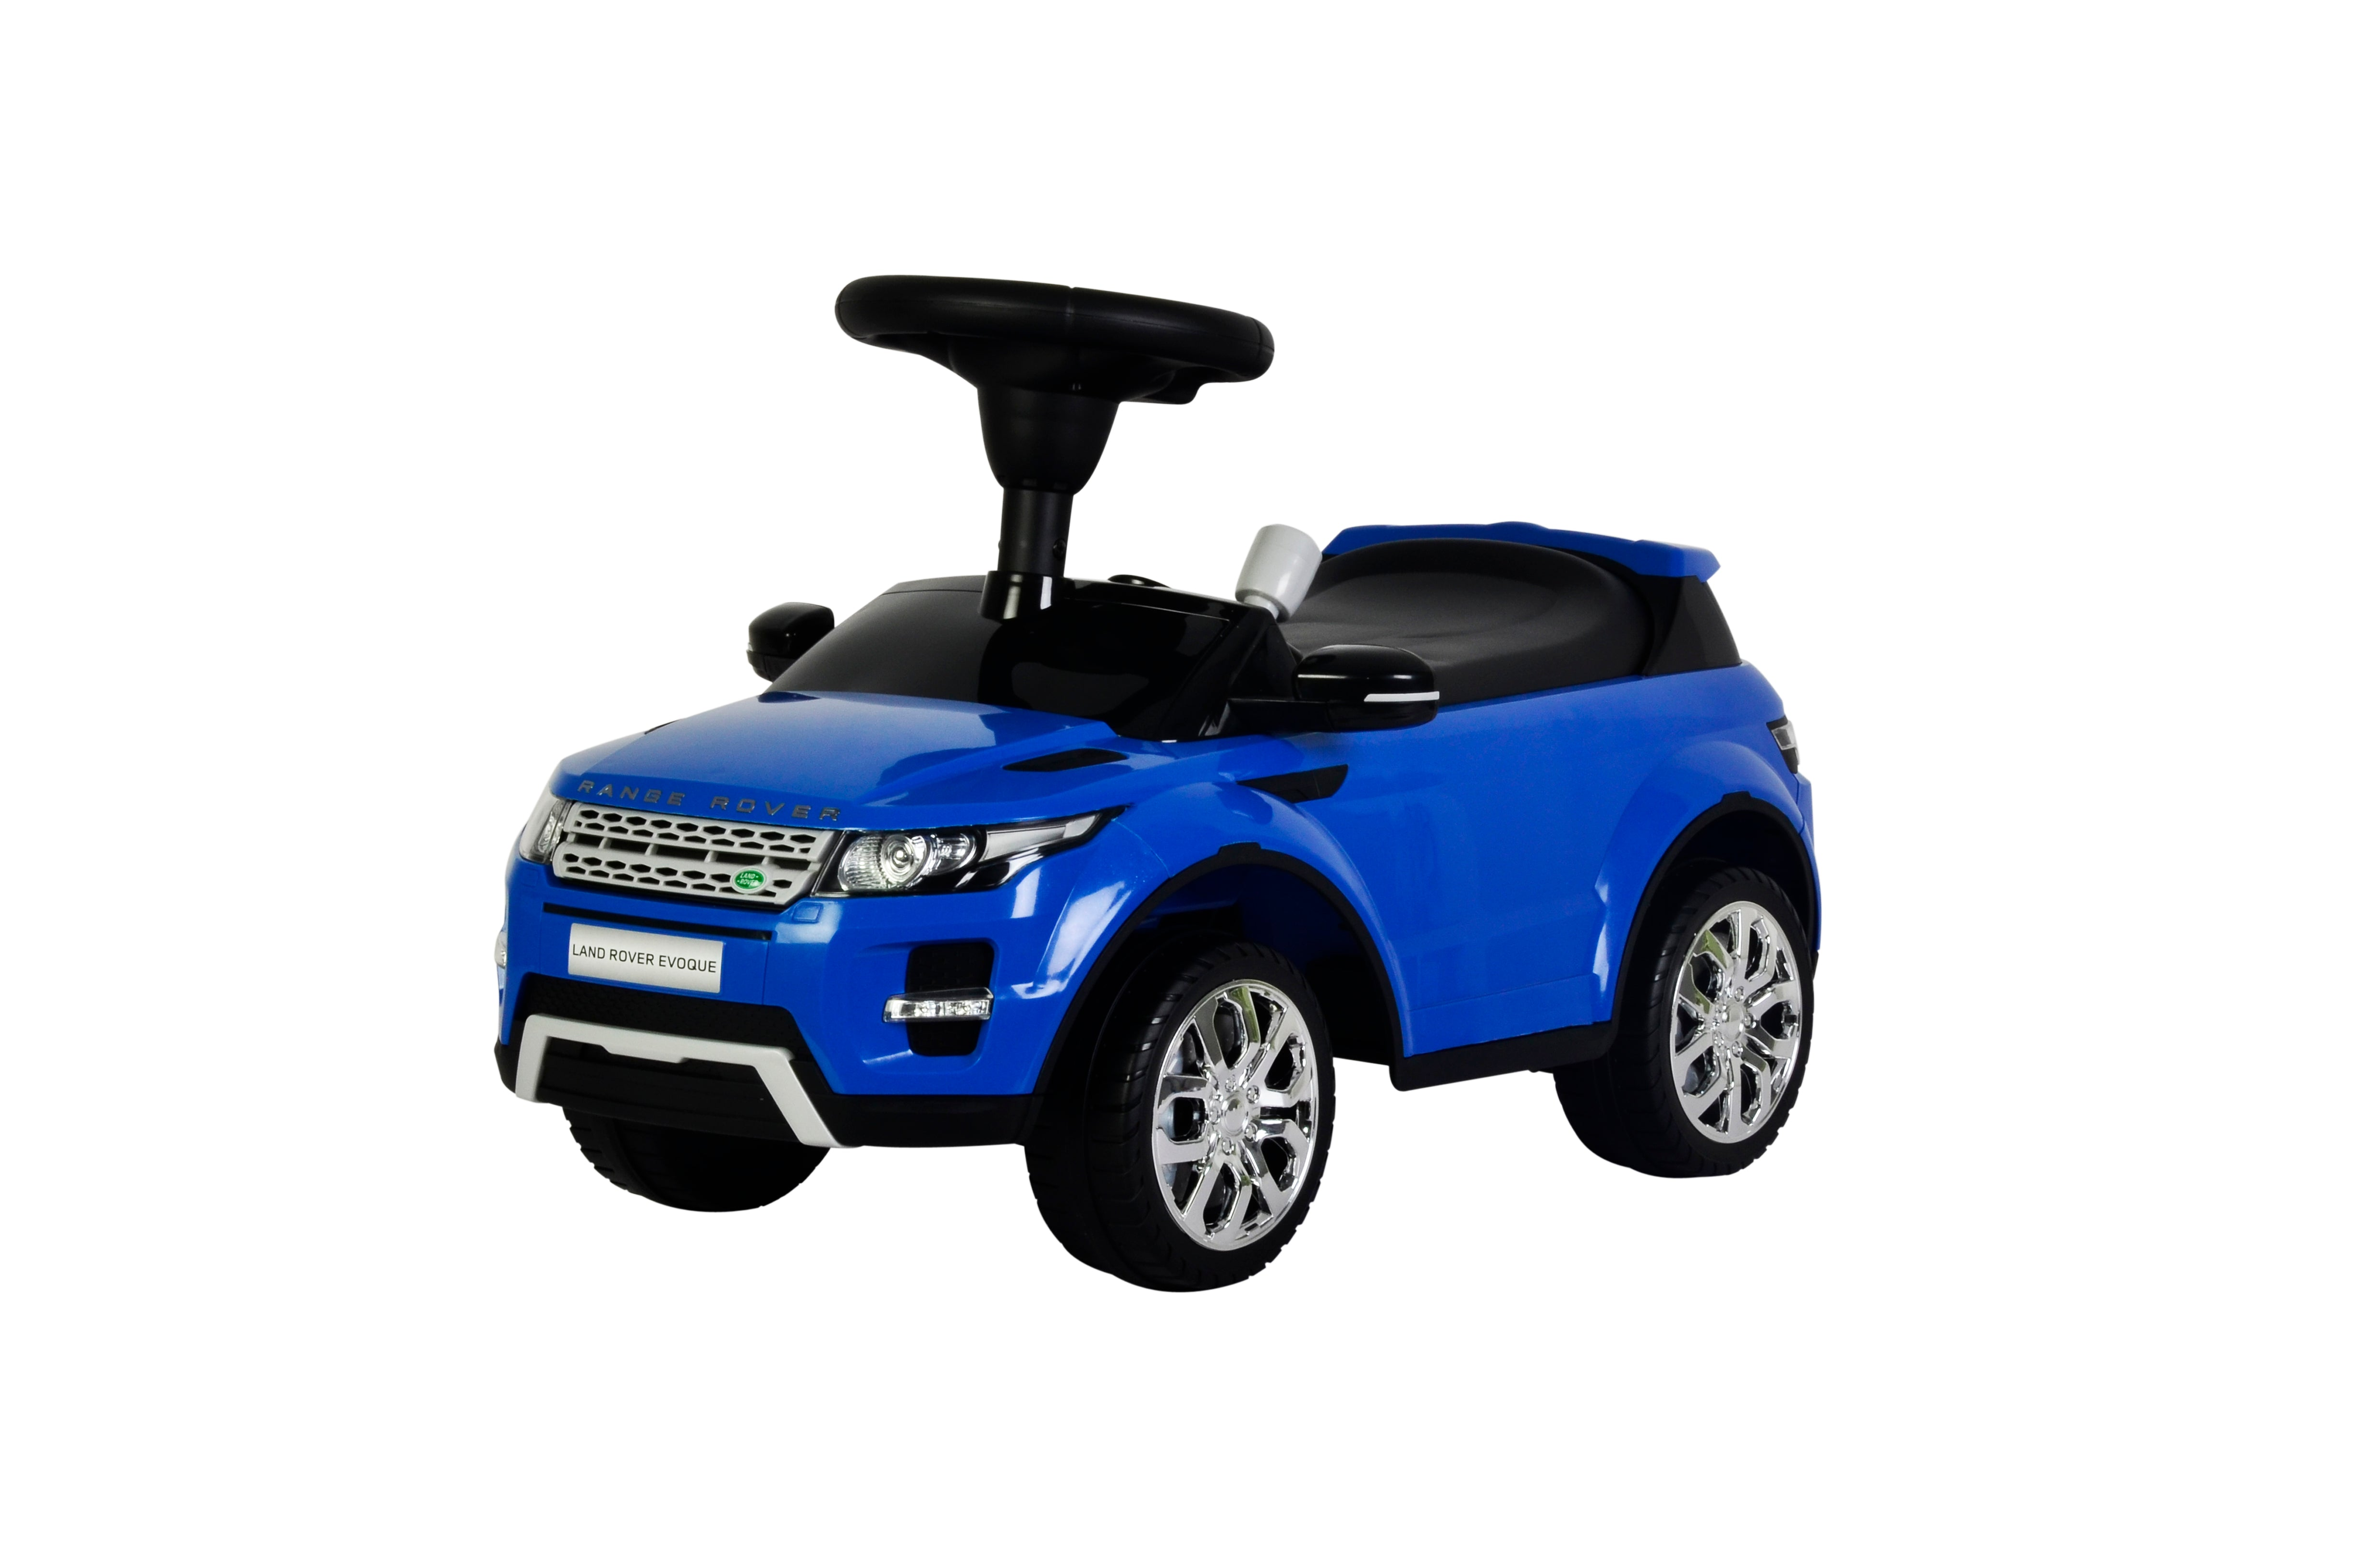 Range Rover Evoque Licensed Manual Ride On (Model:348) BLUE - RICCO® Toys